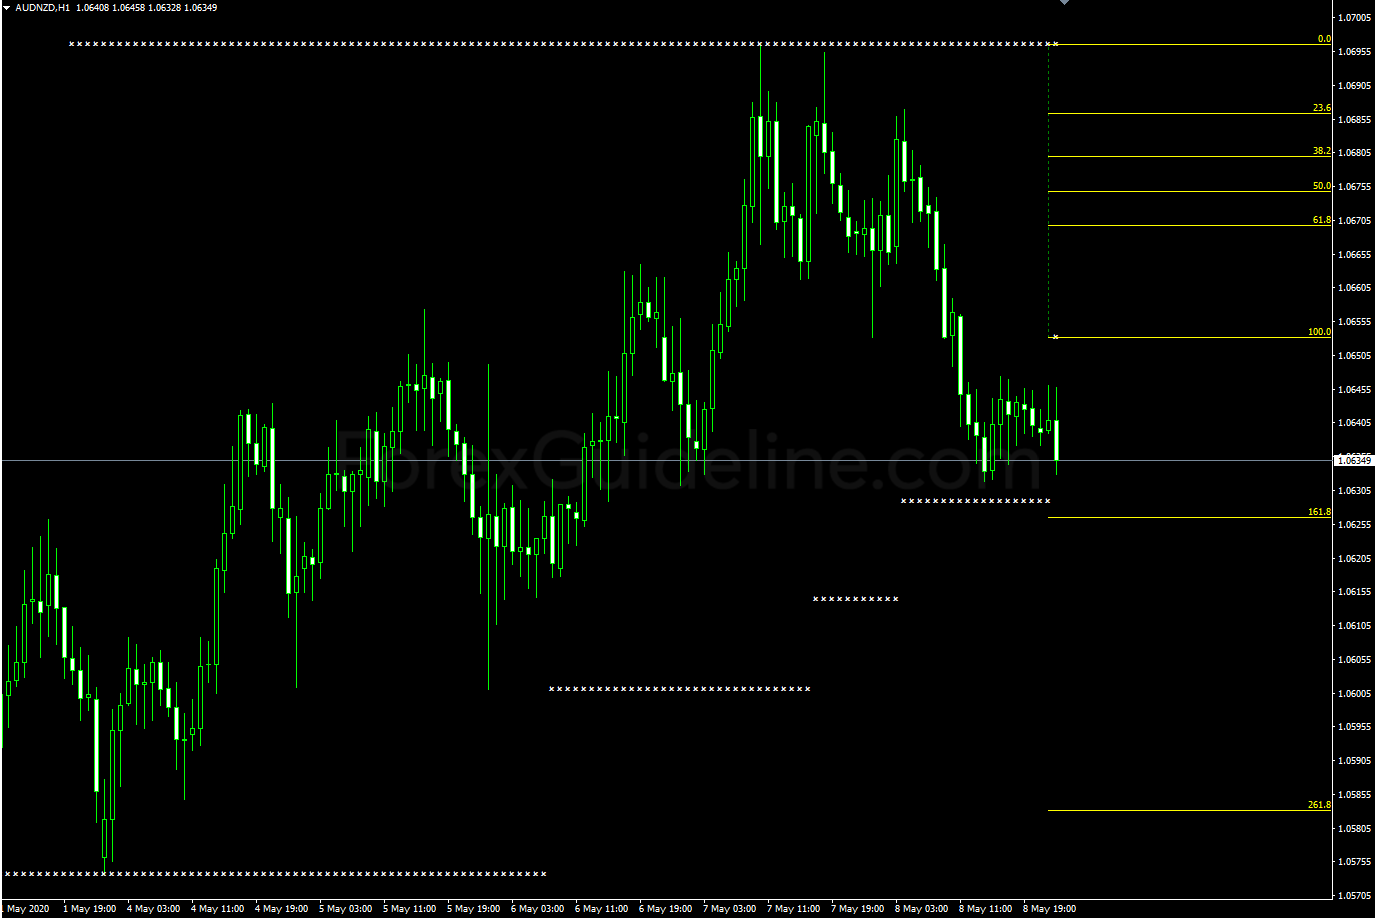 fpm support and resistance